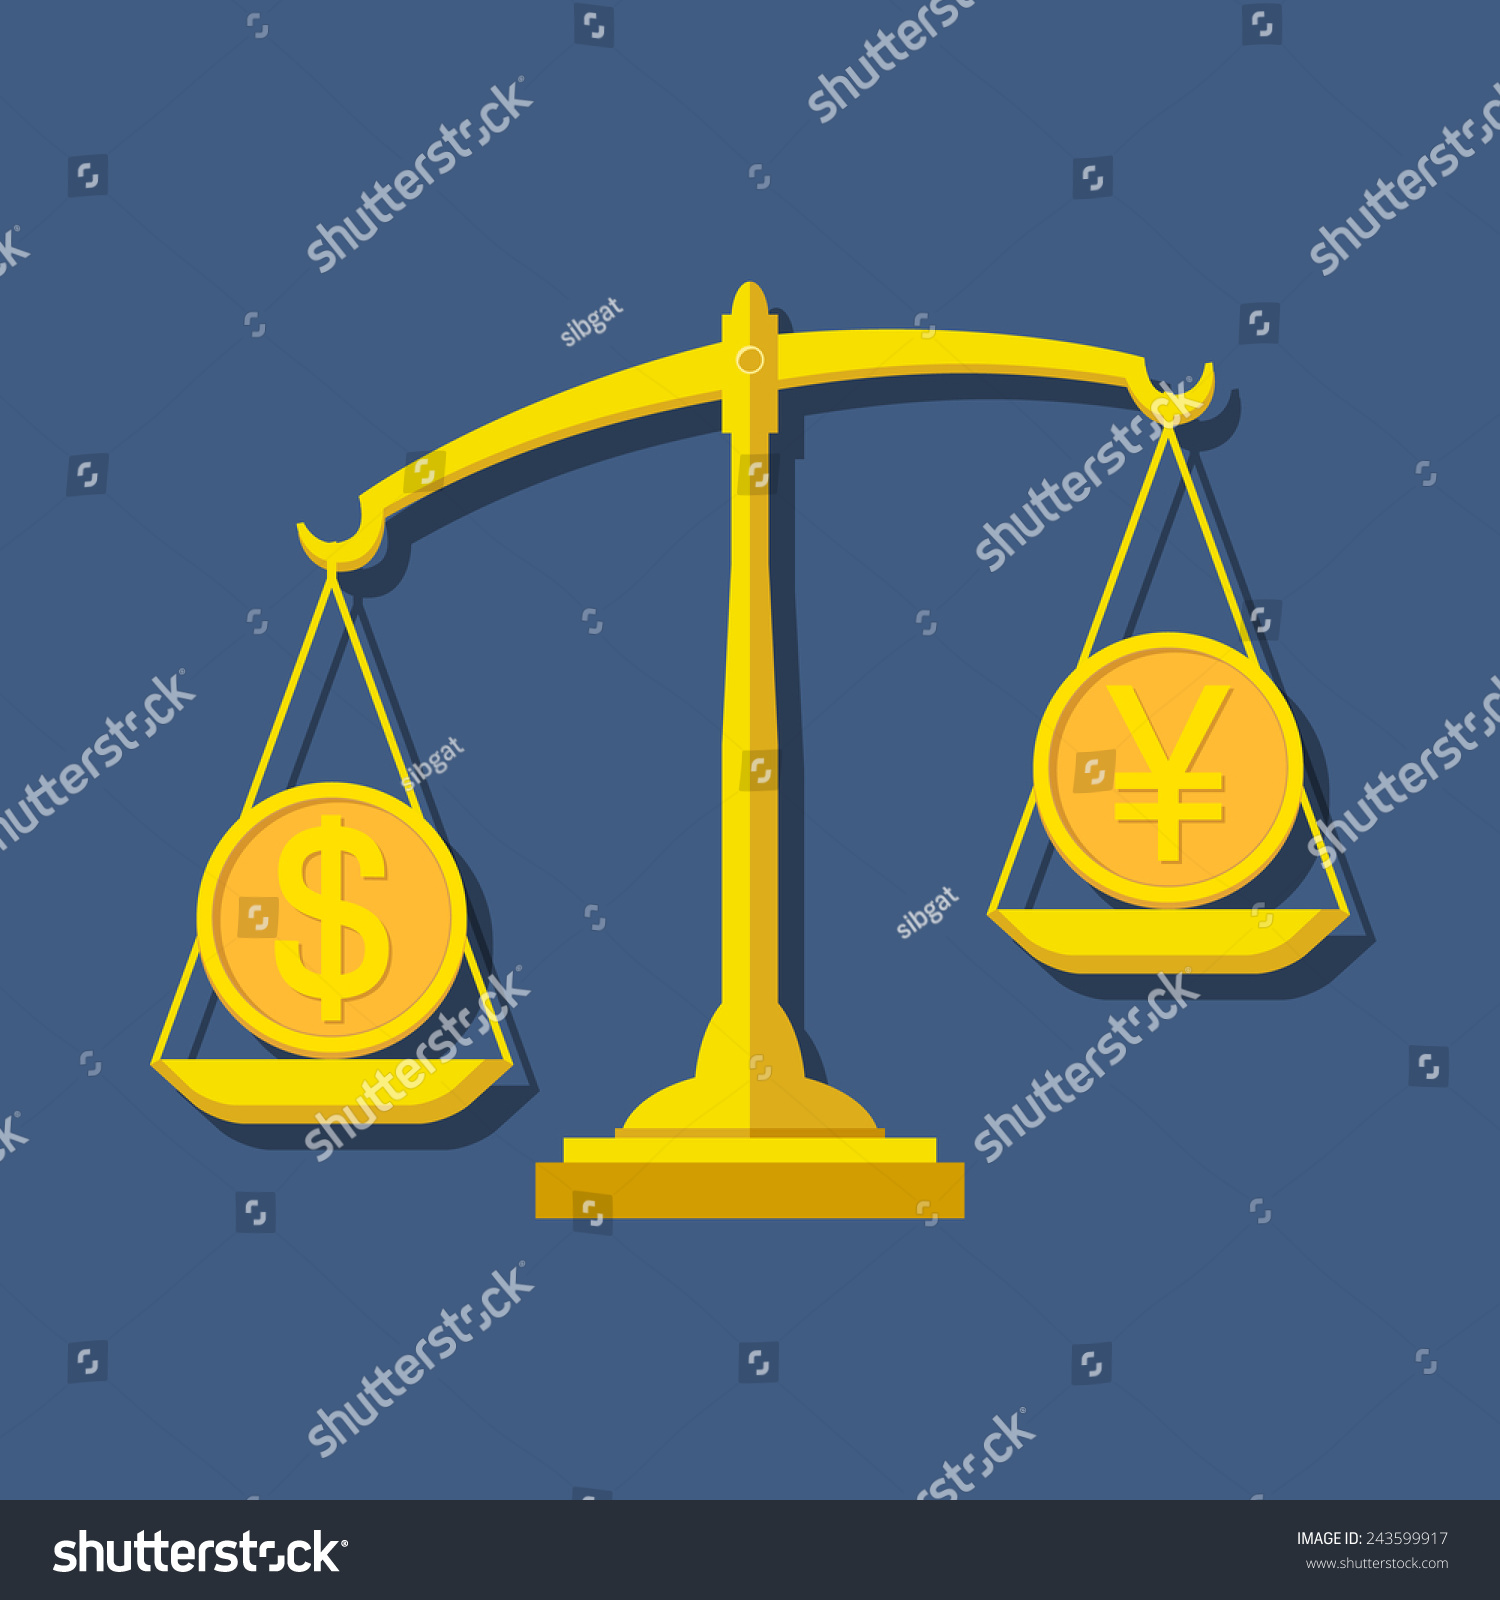 Scales dollar yen yuan symbols foreign stock illustration 243599917 scales dollar yen yuan symbols foreign stock illustration 243599917 shutterstock buycottarizona Gallery